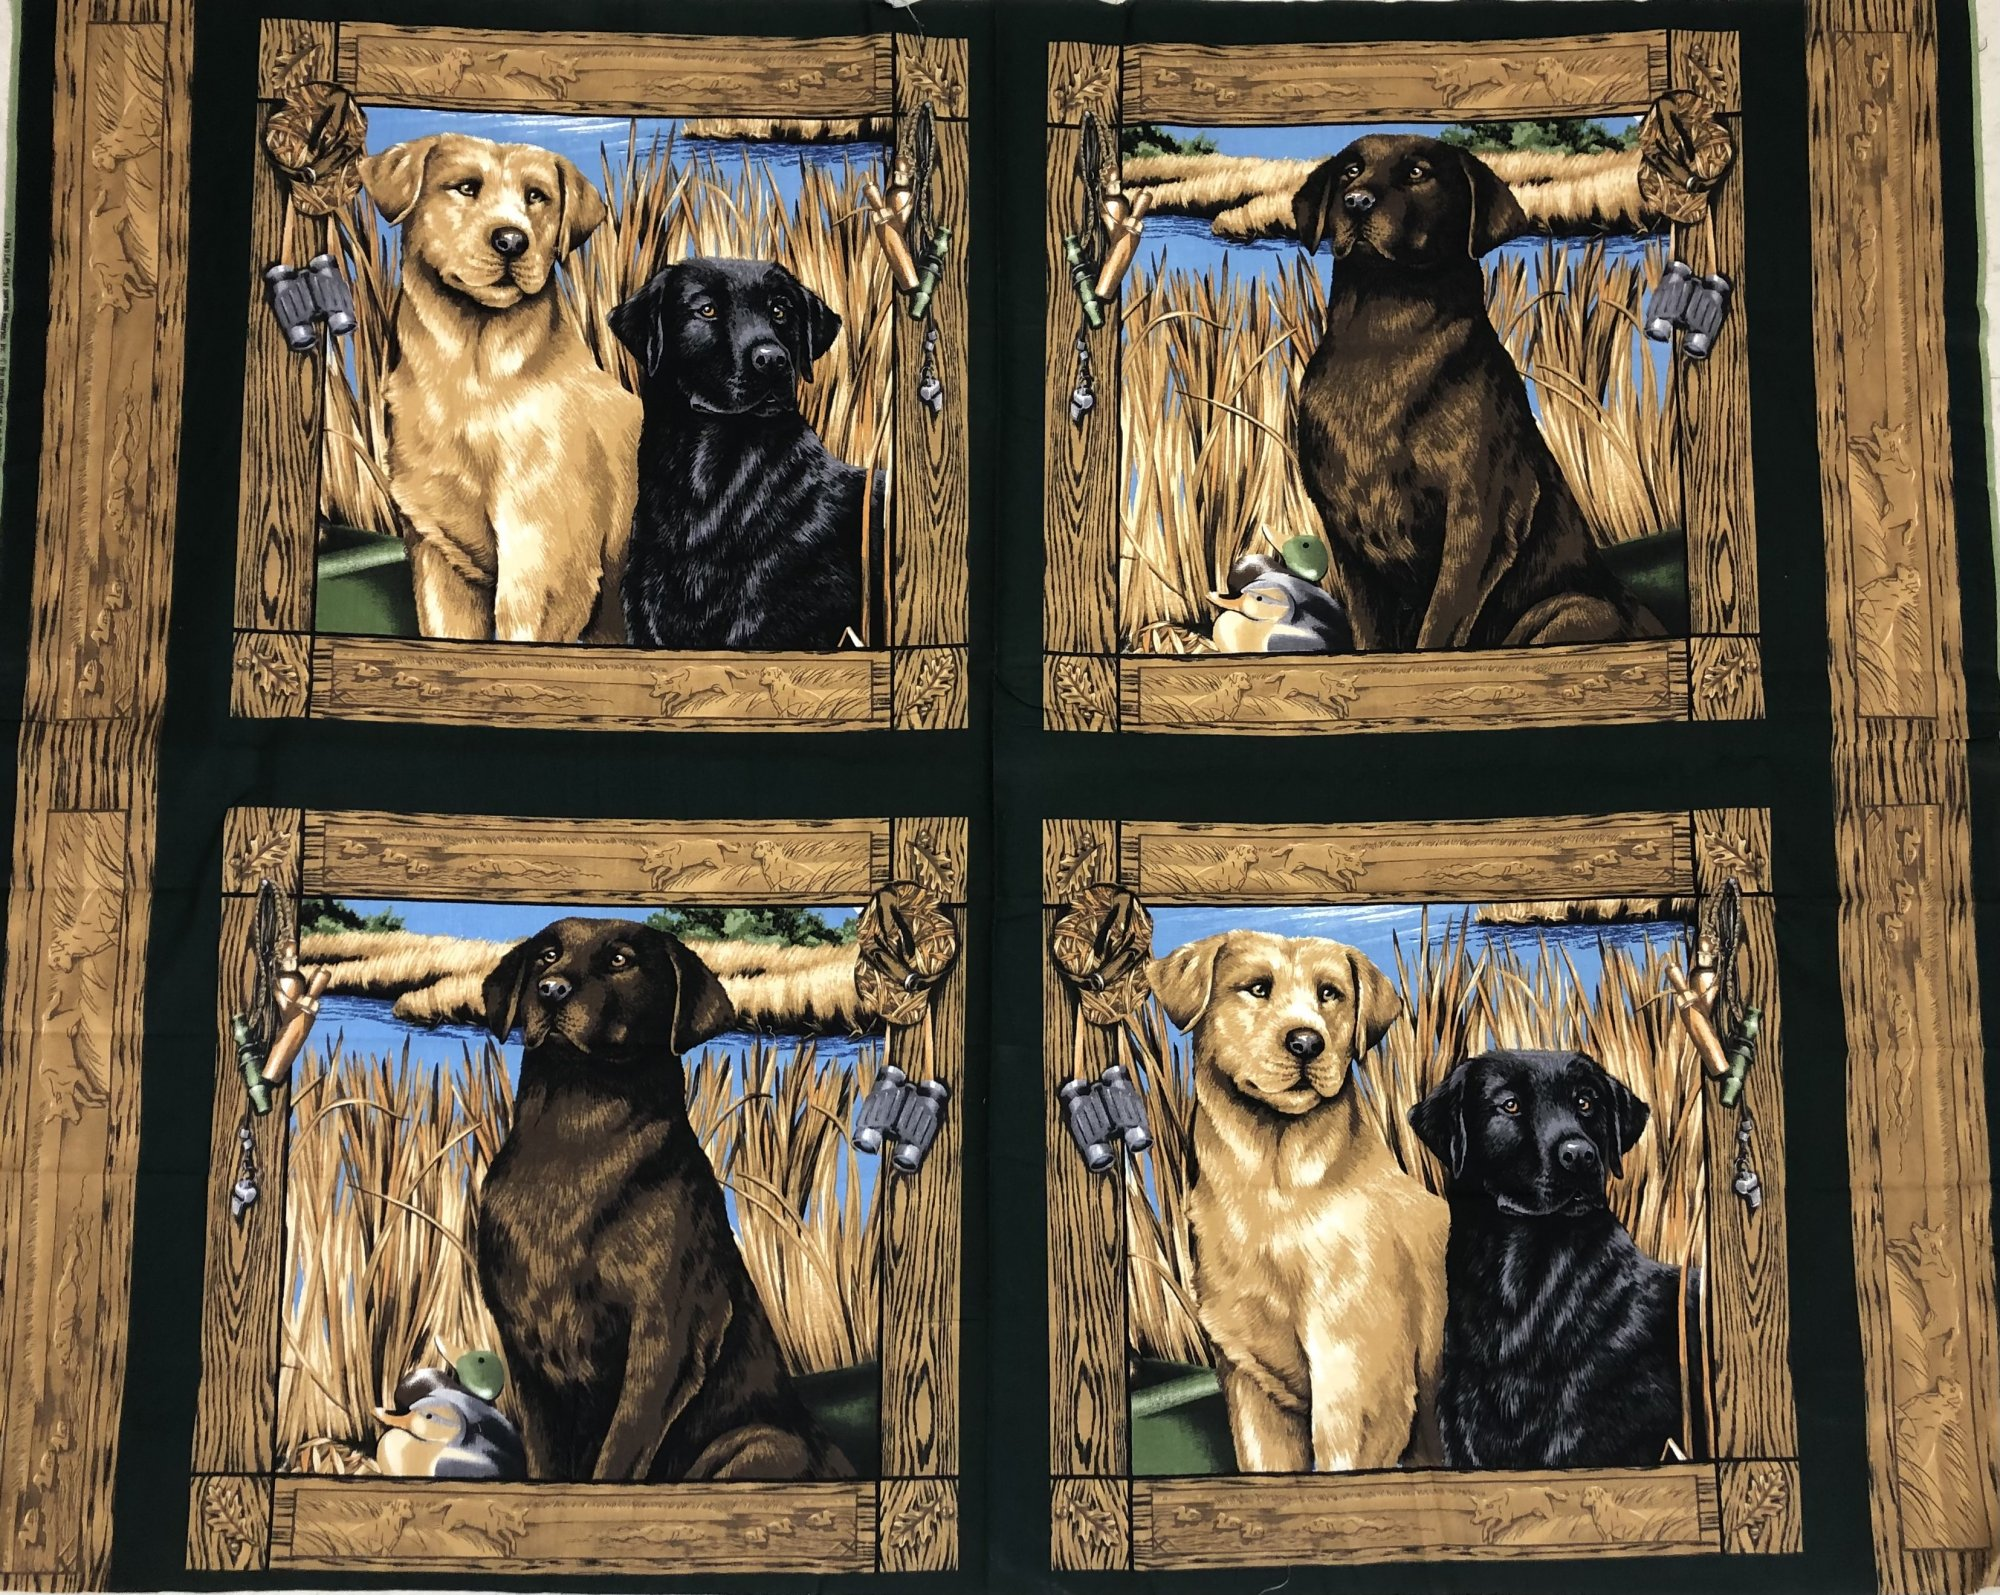 Springs Industries - A Dog's Life - Retriever / Hunting Dog - 34 Panel